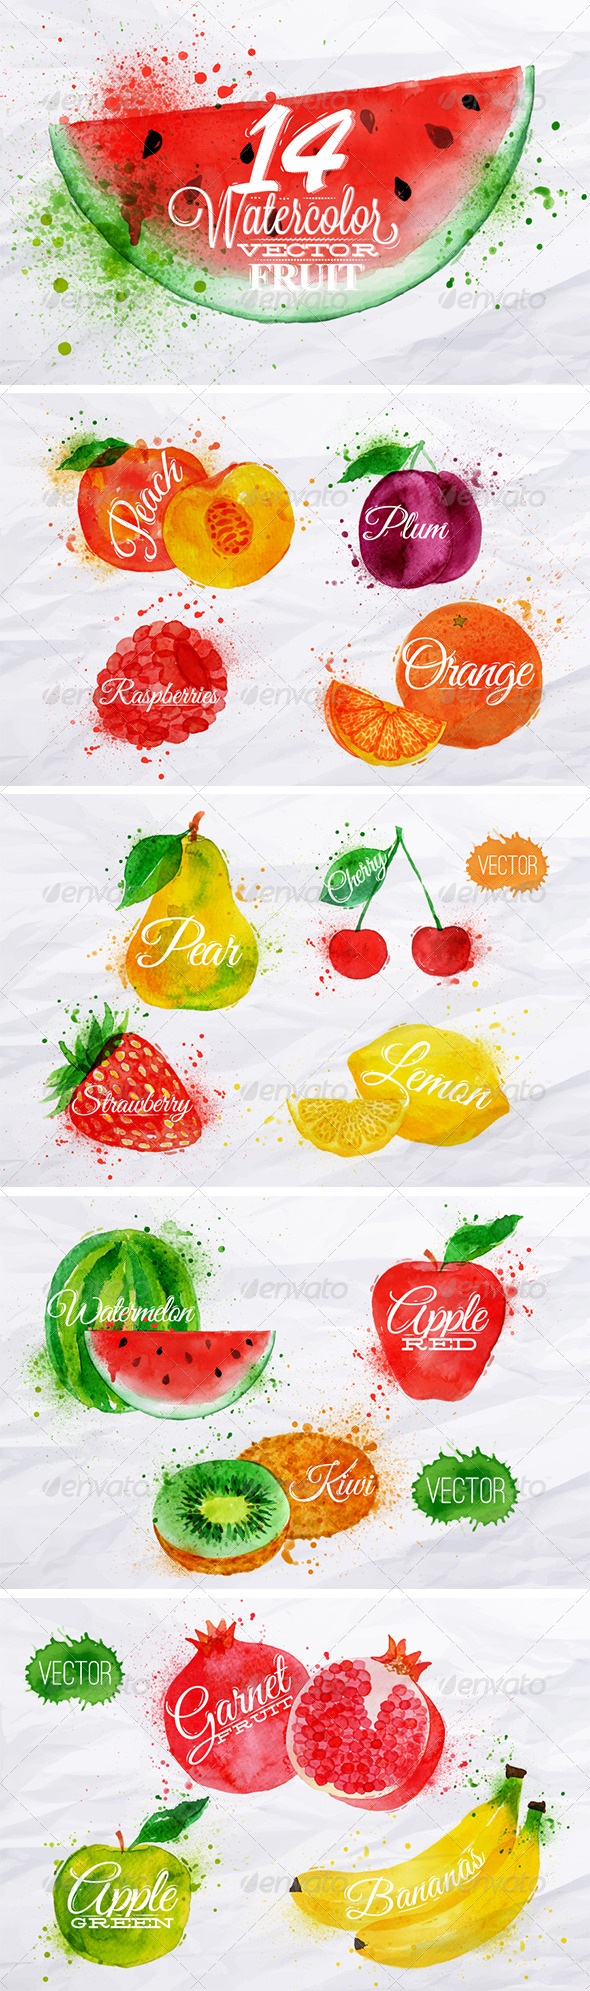 GraphicRiver Fruit Watercolor 7901978